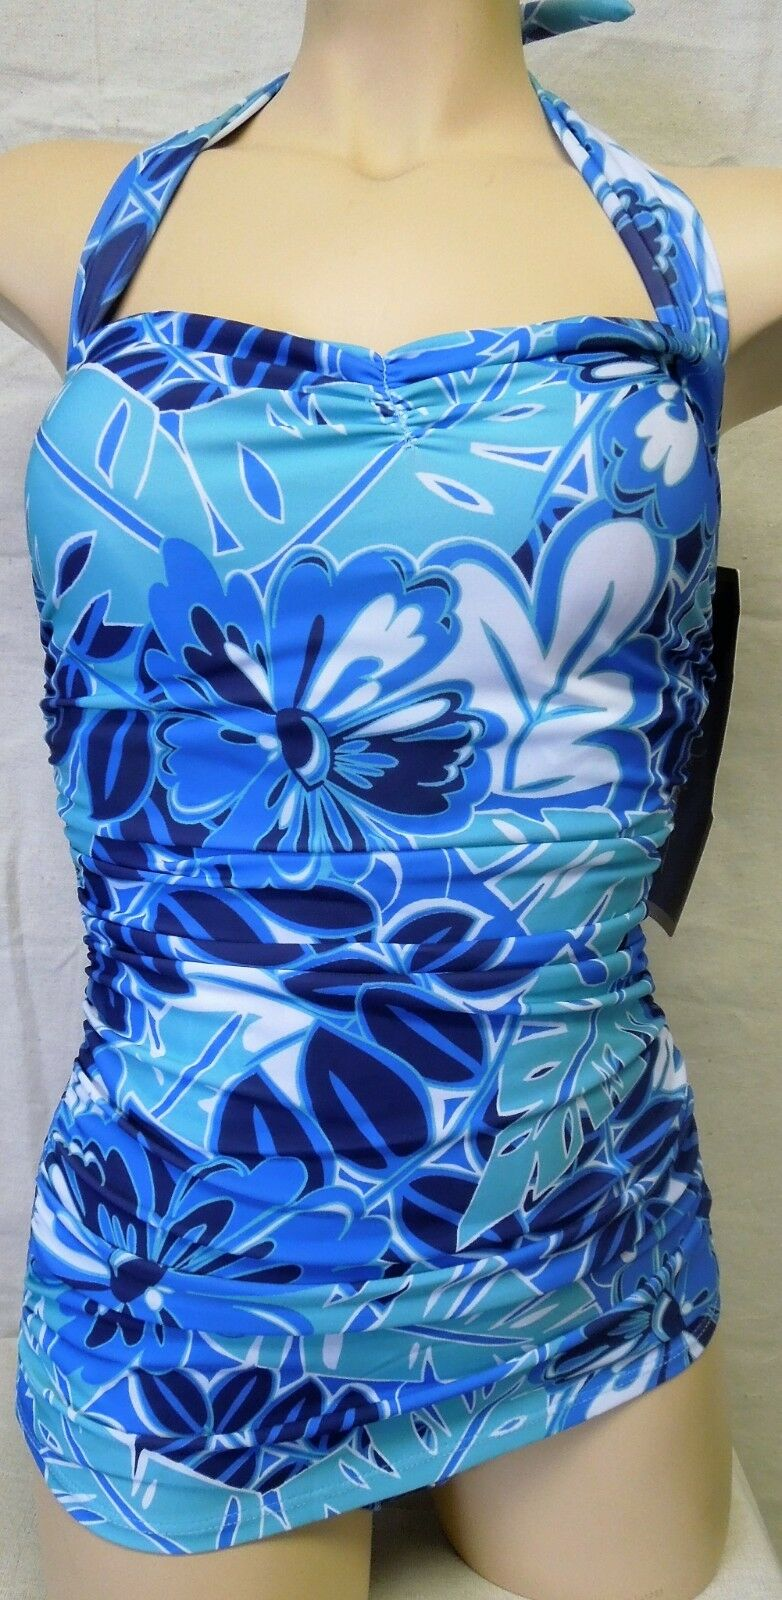 Esther Williams One-Piece Classic Sheath Swimsuit - bluee Floral